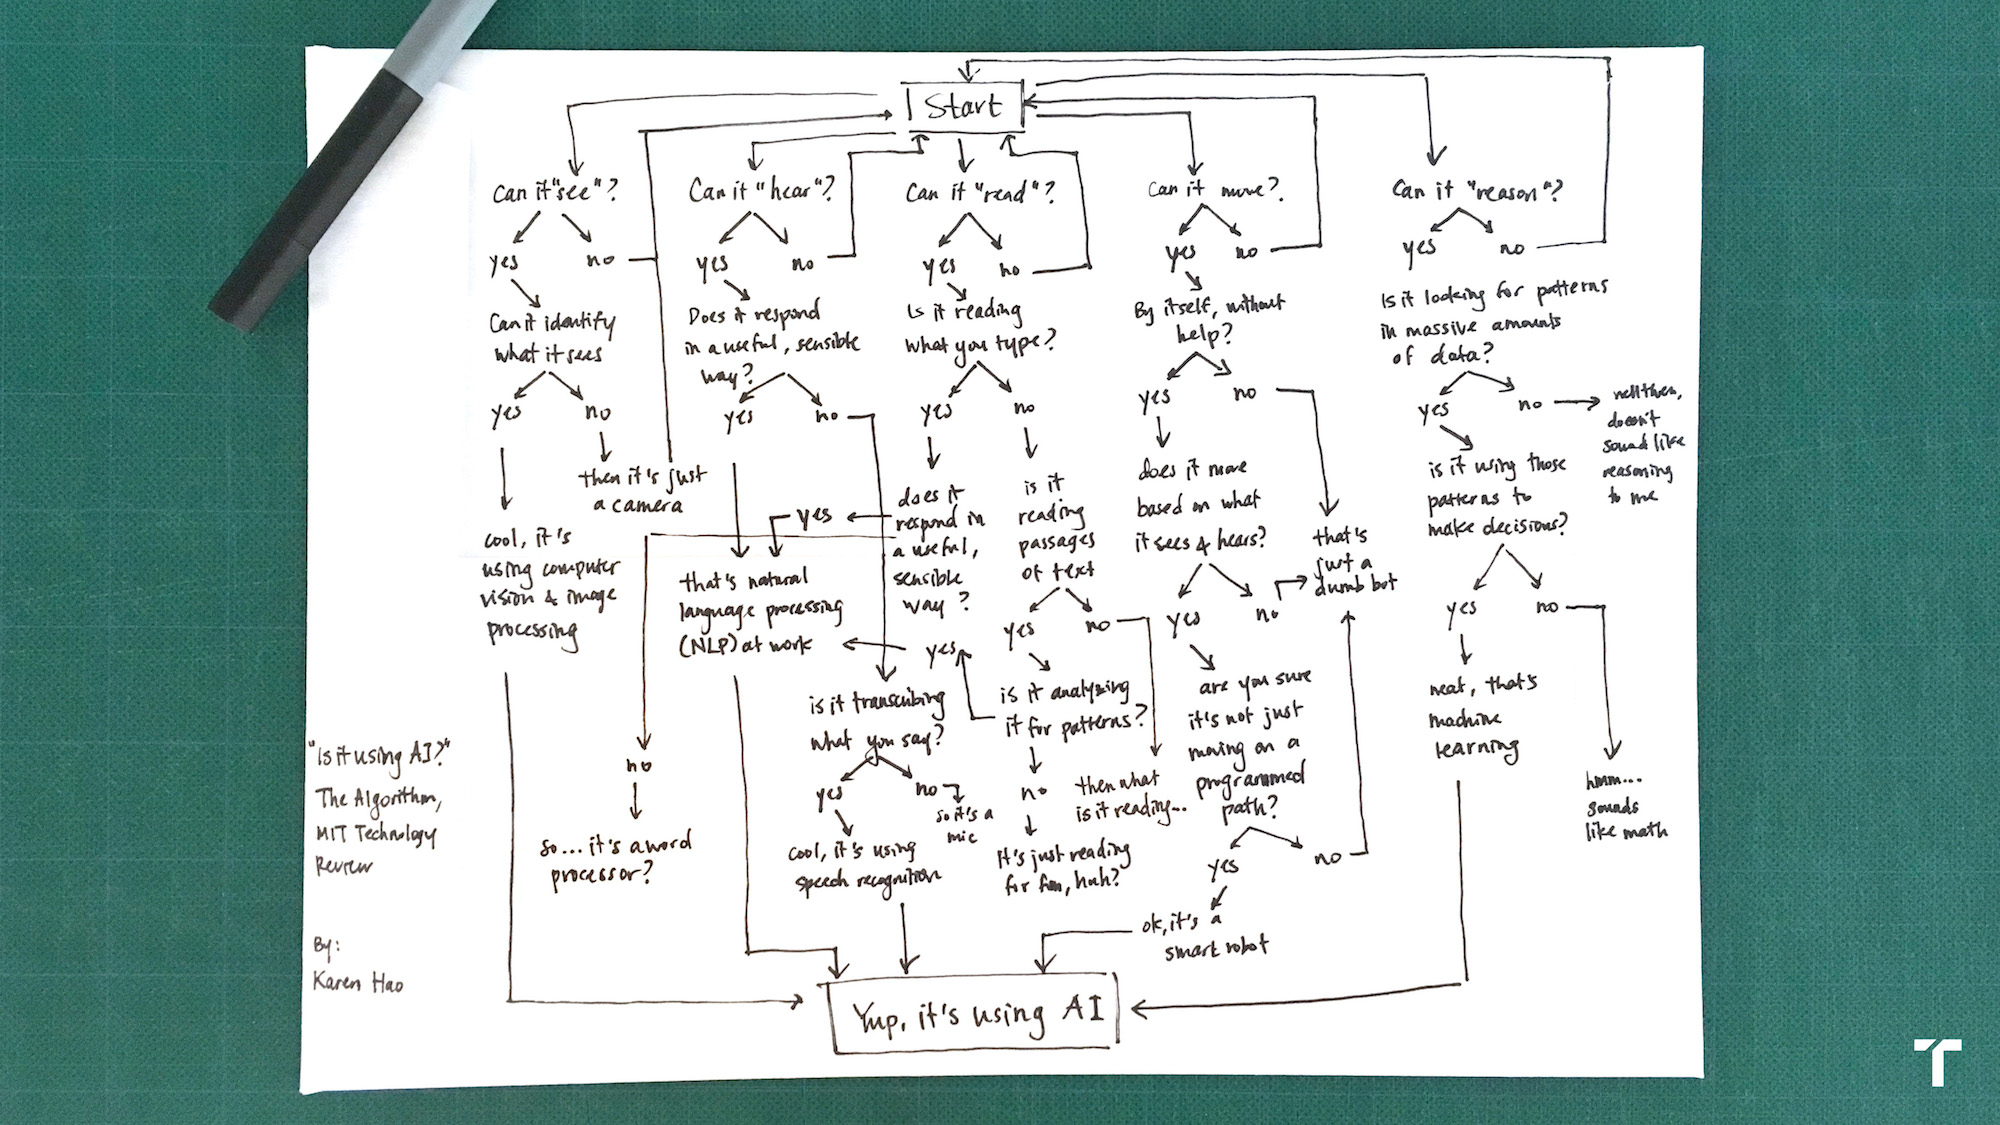 Is this AI? We drew you a flowchart to work it out